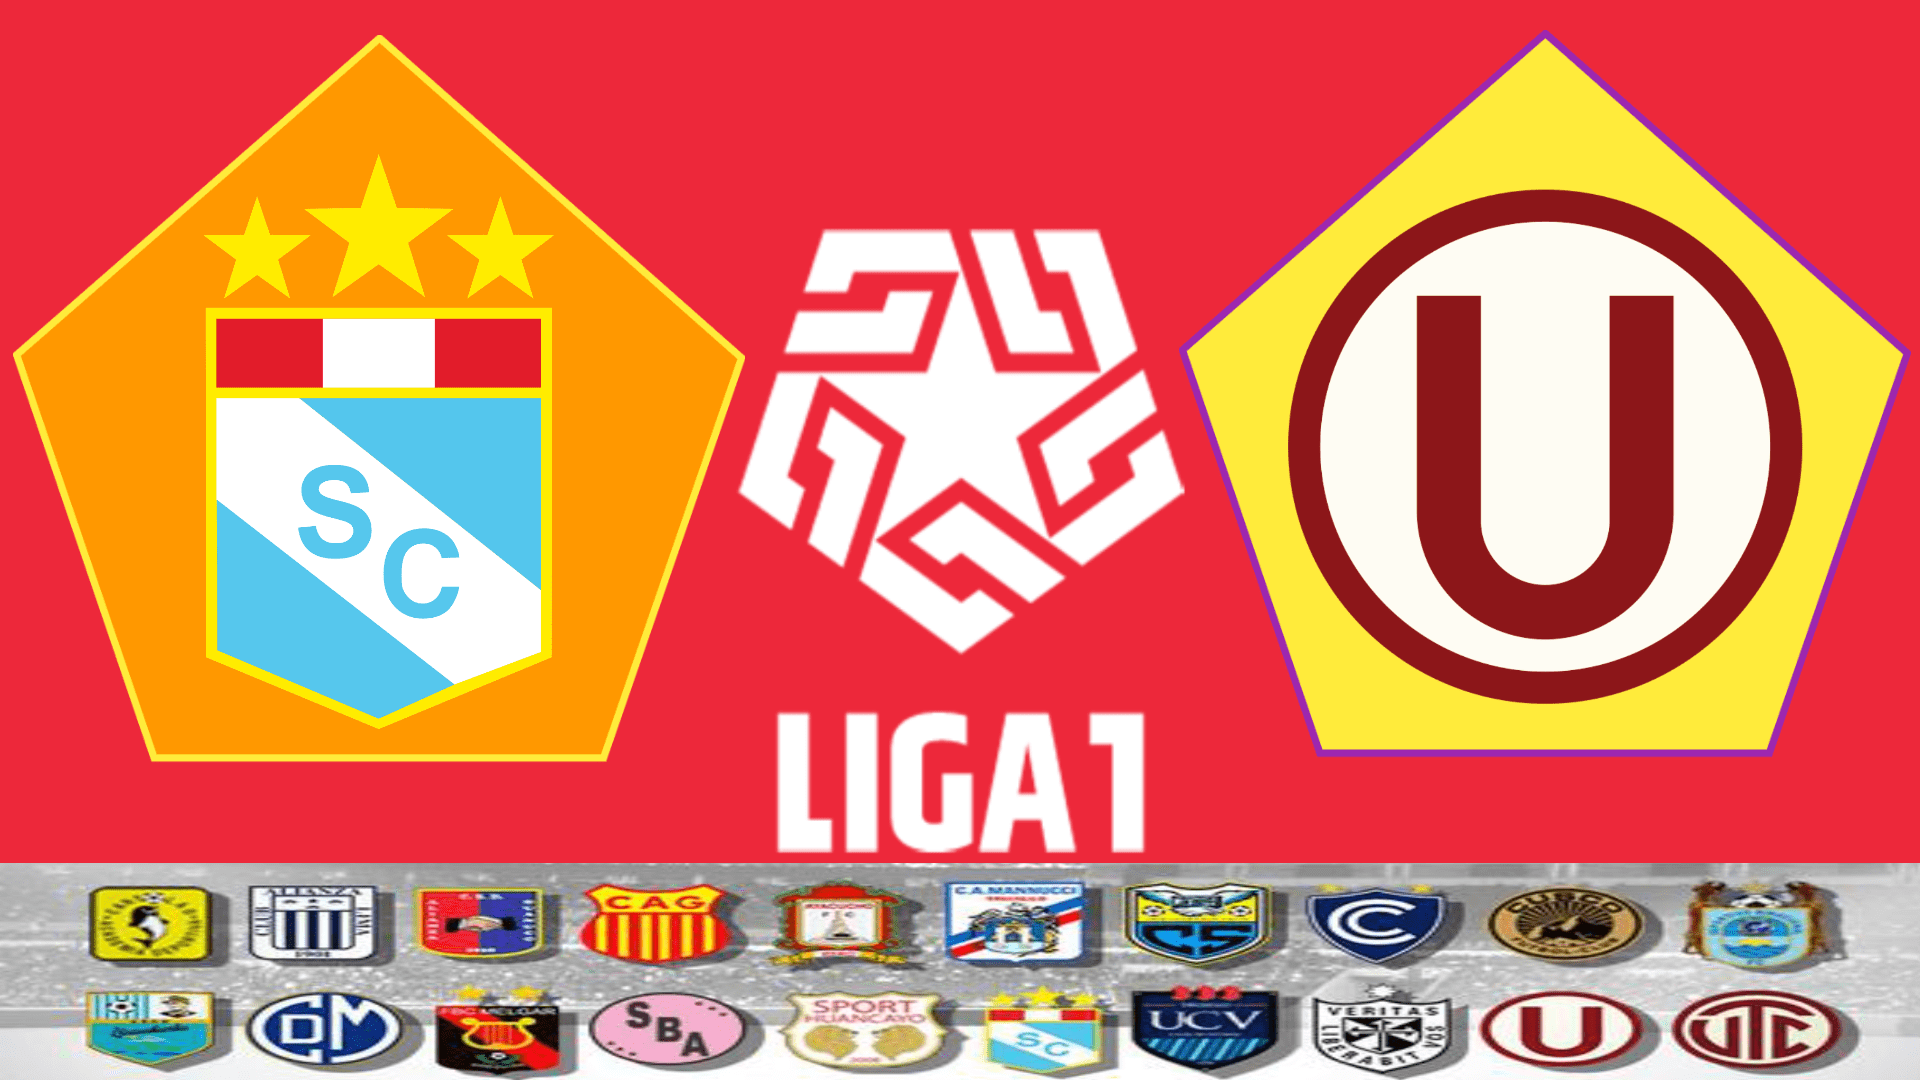 EN DIRECTO Universitario vs Sporting Cristal EN VIVO